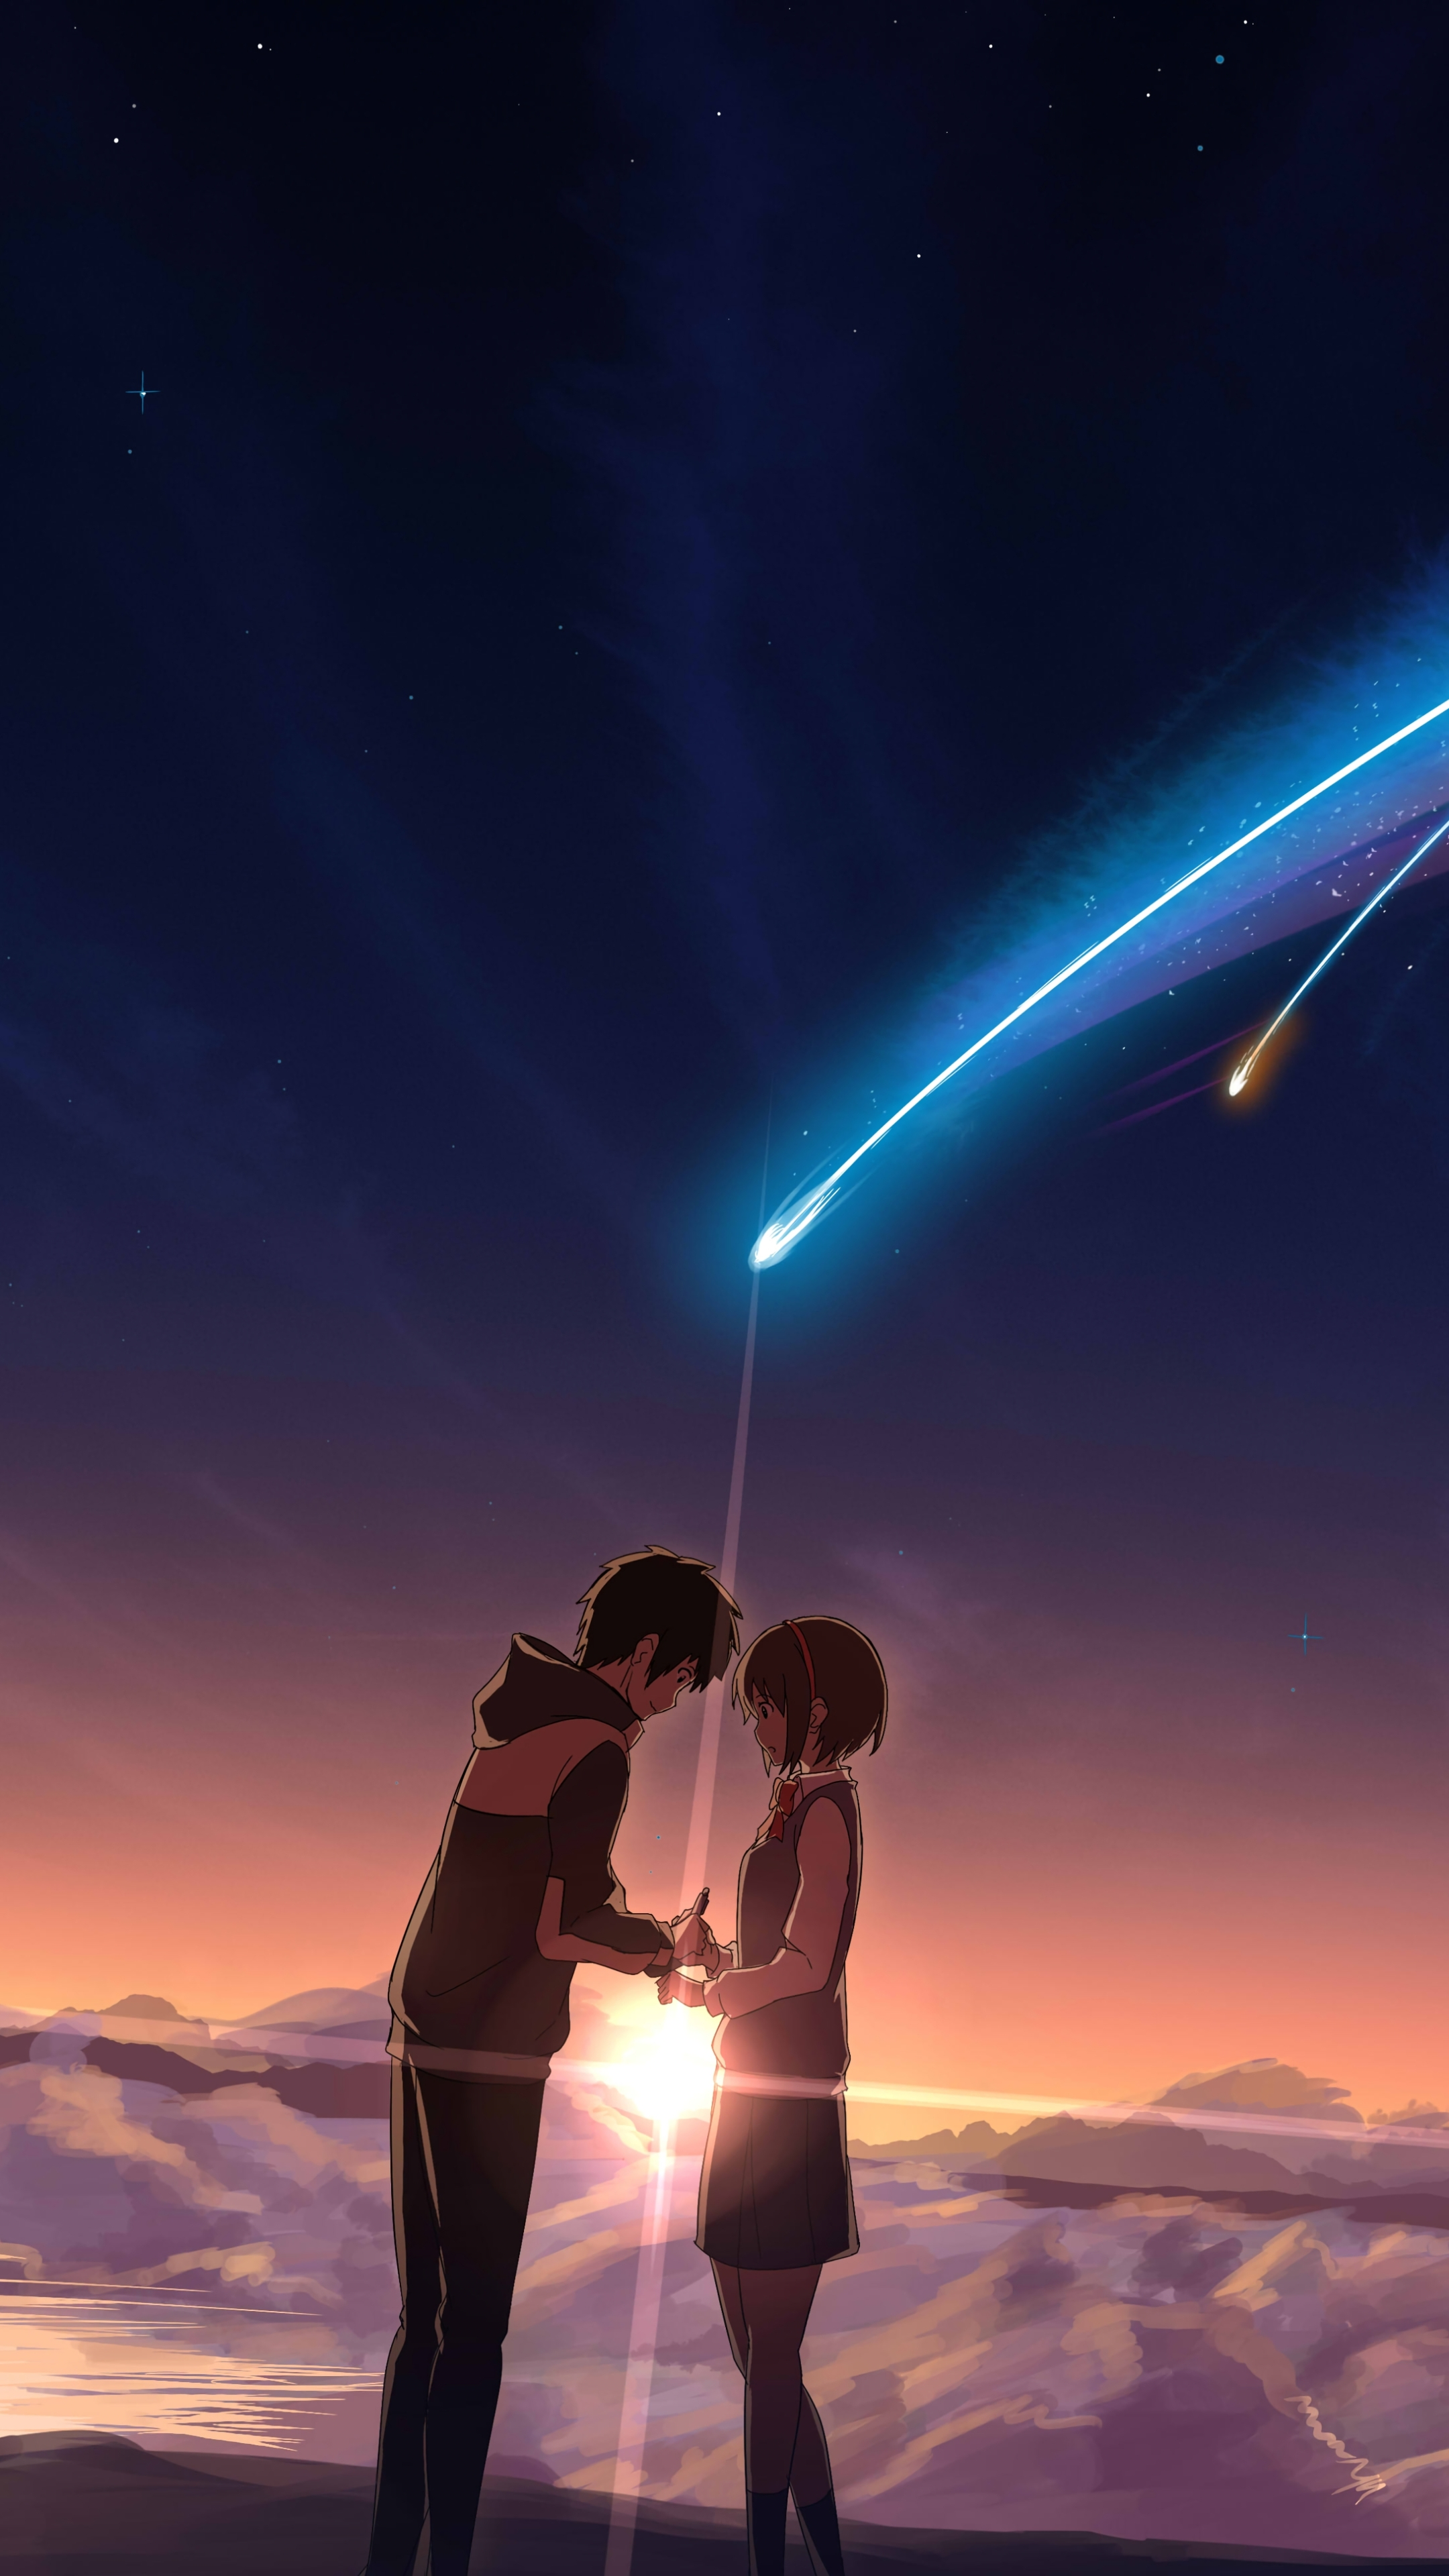 178 Your Name Apple Iphone 5 640x1136 Wallpapers Mobile Abyss